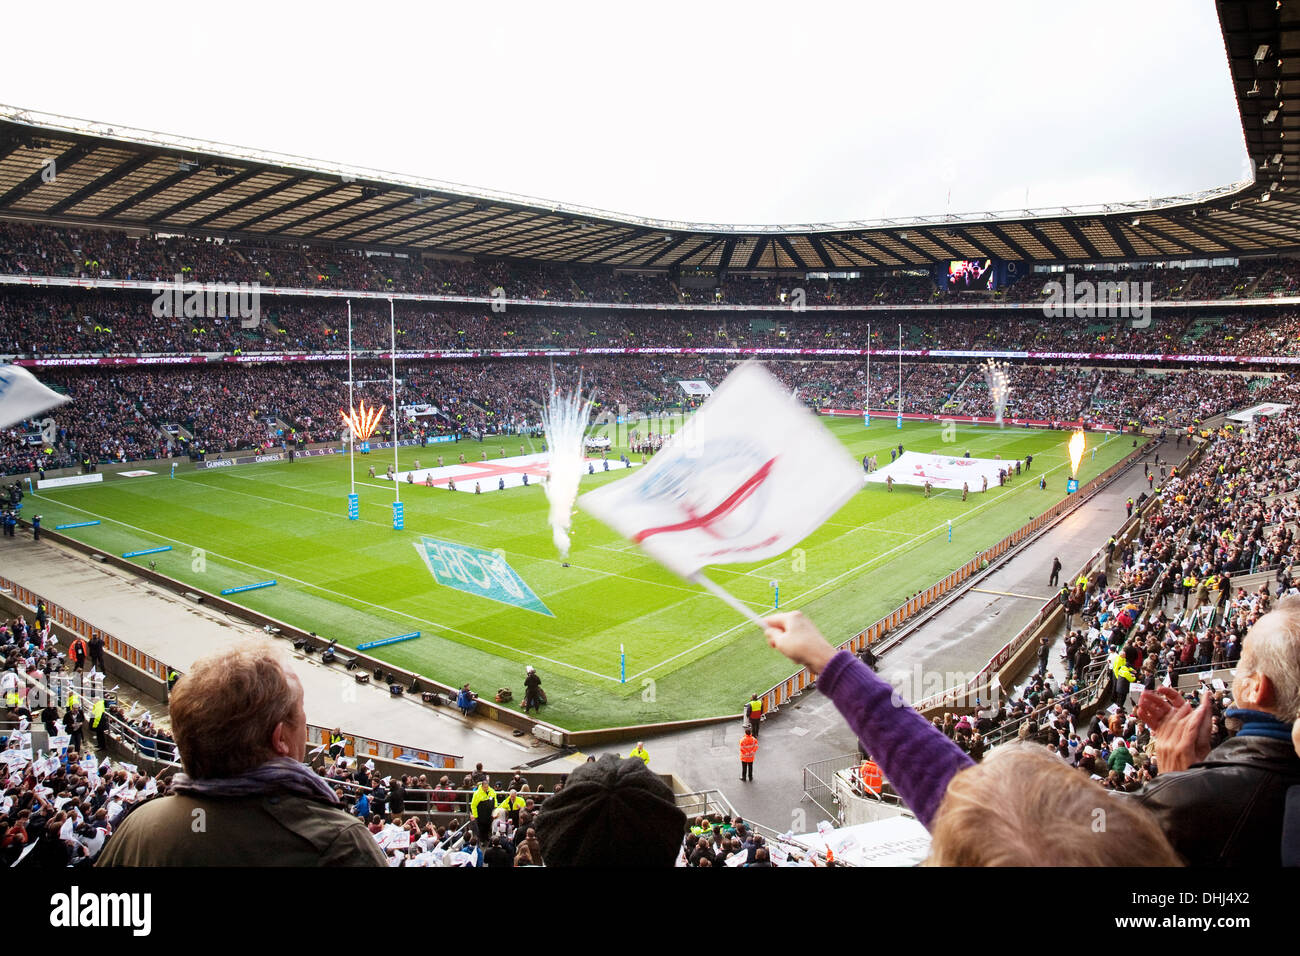 Twickenham stadium interior - fans at an International rugby game between England and Argentina, london UK - Stock Image